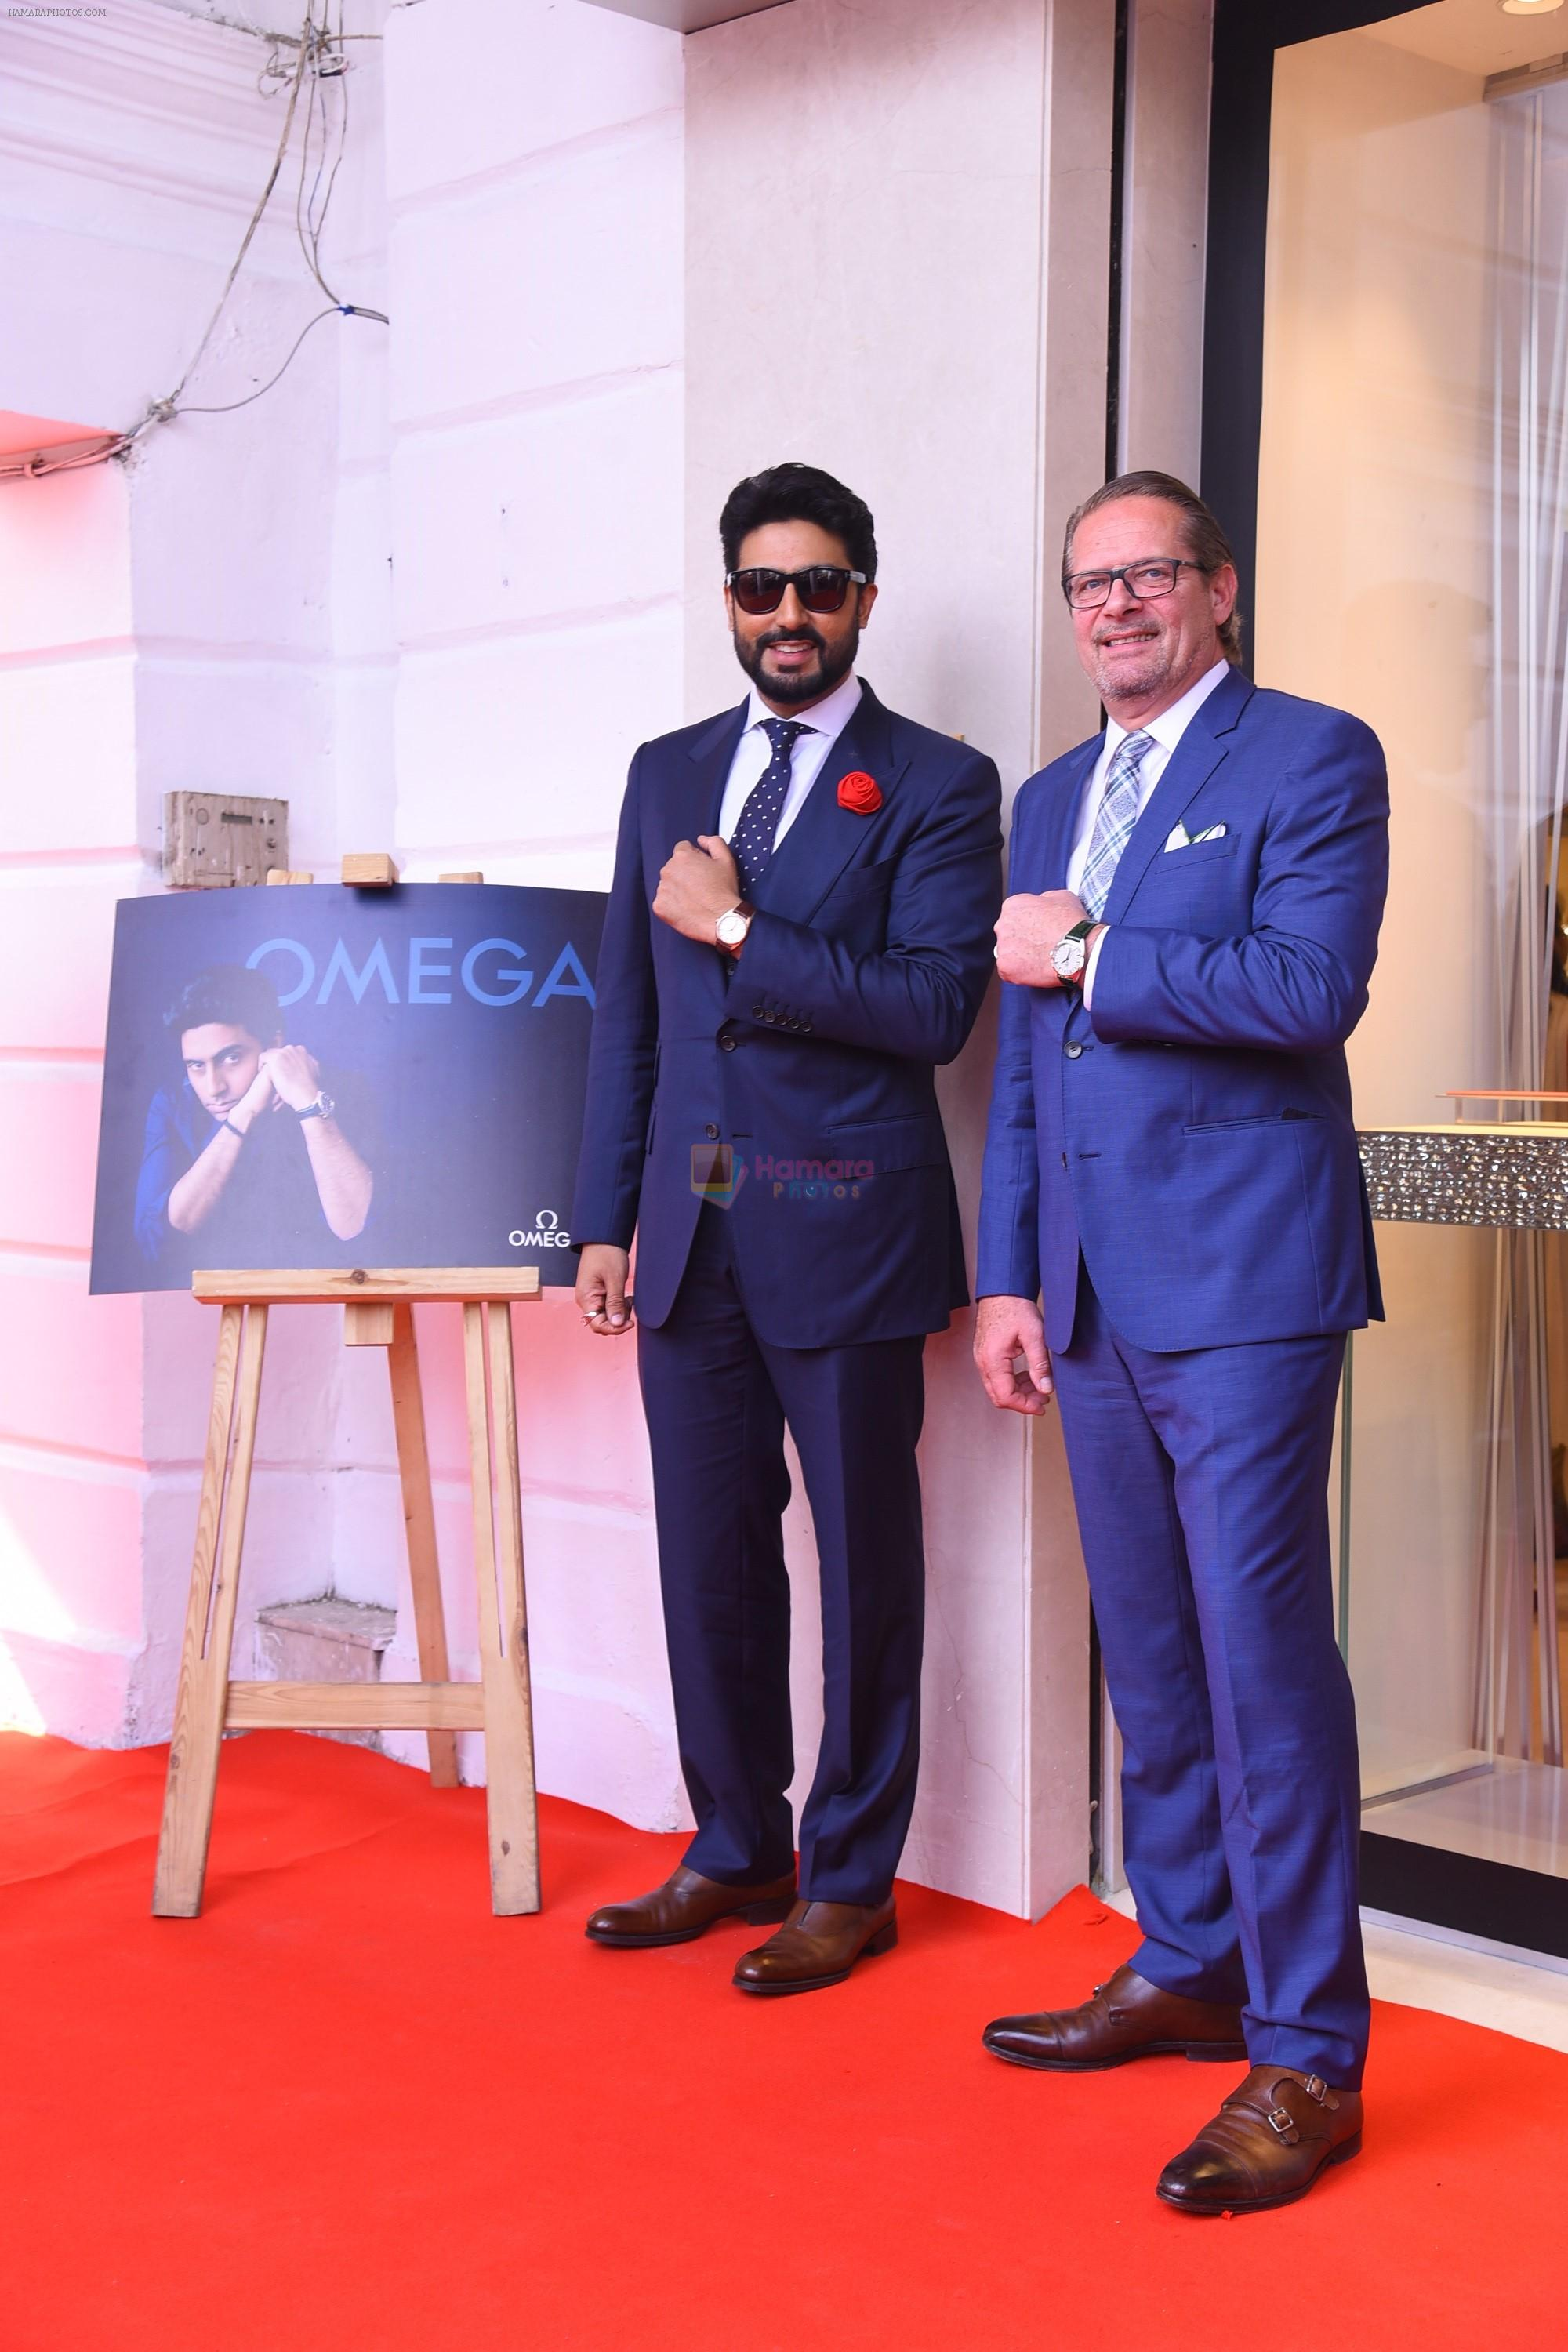 Abhishek Bachchan joins OMEGA in Delhi to celebrate the success of the World�s First Master Chronometer on 18th Nov 2016